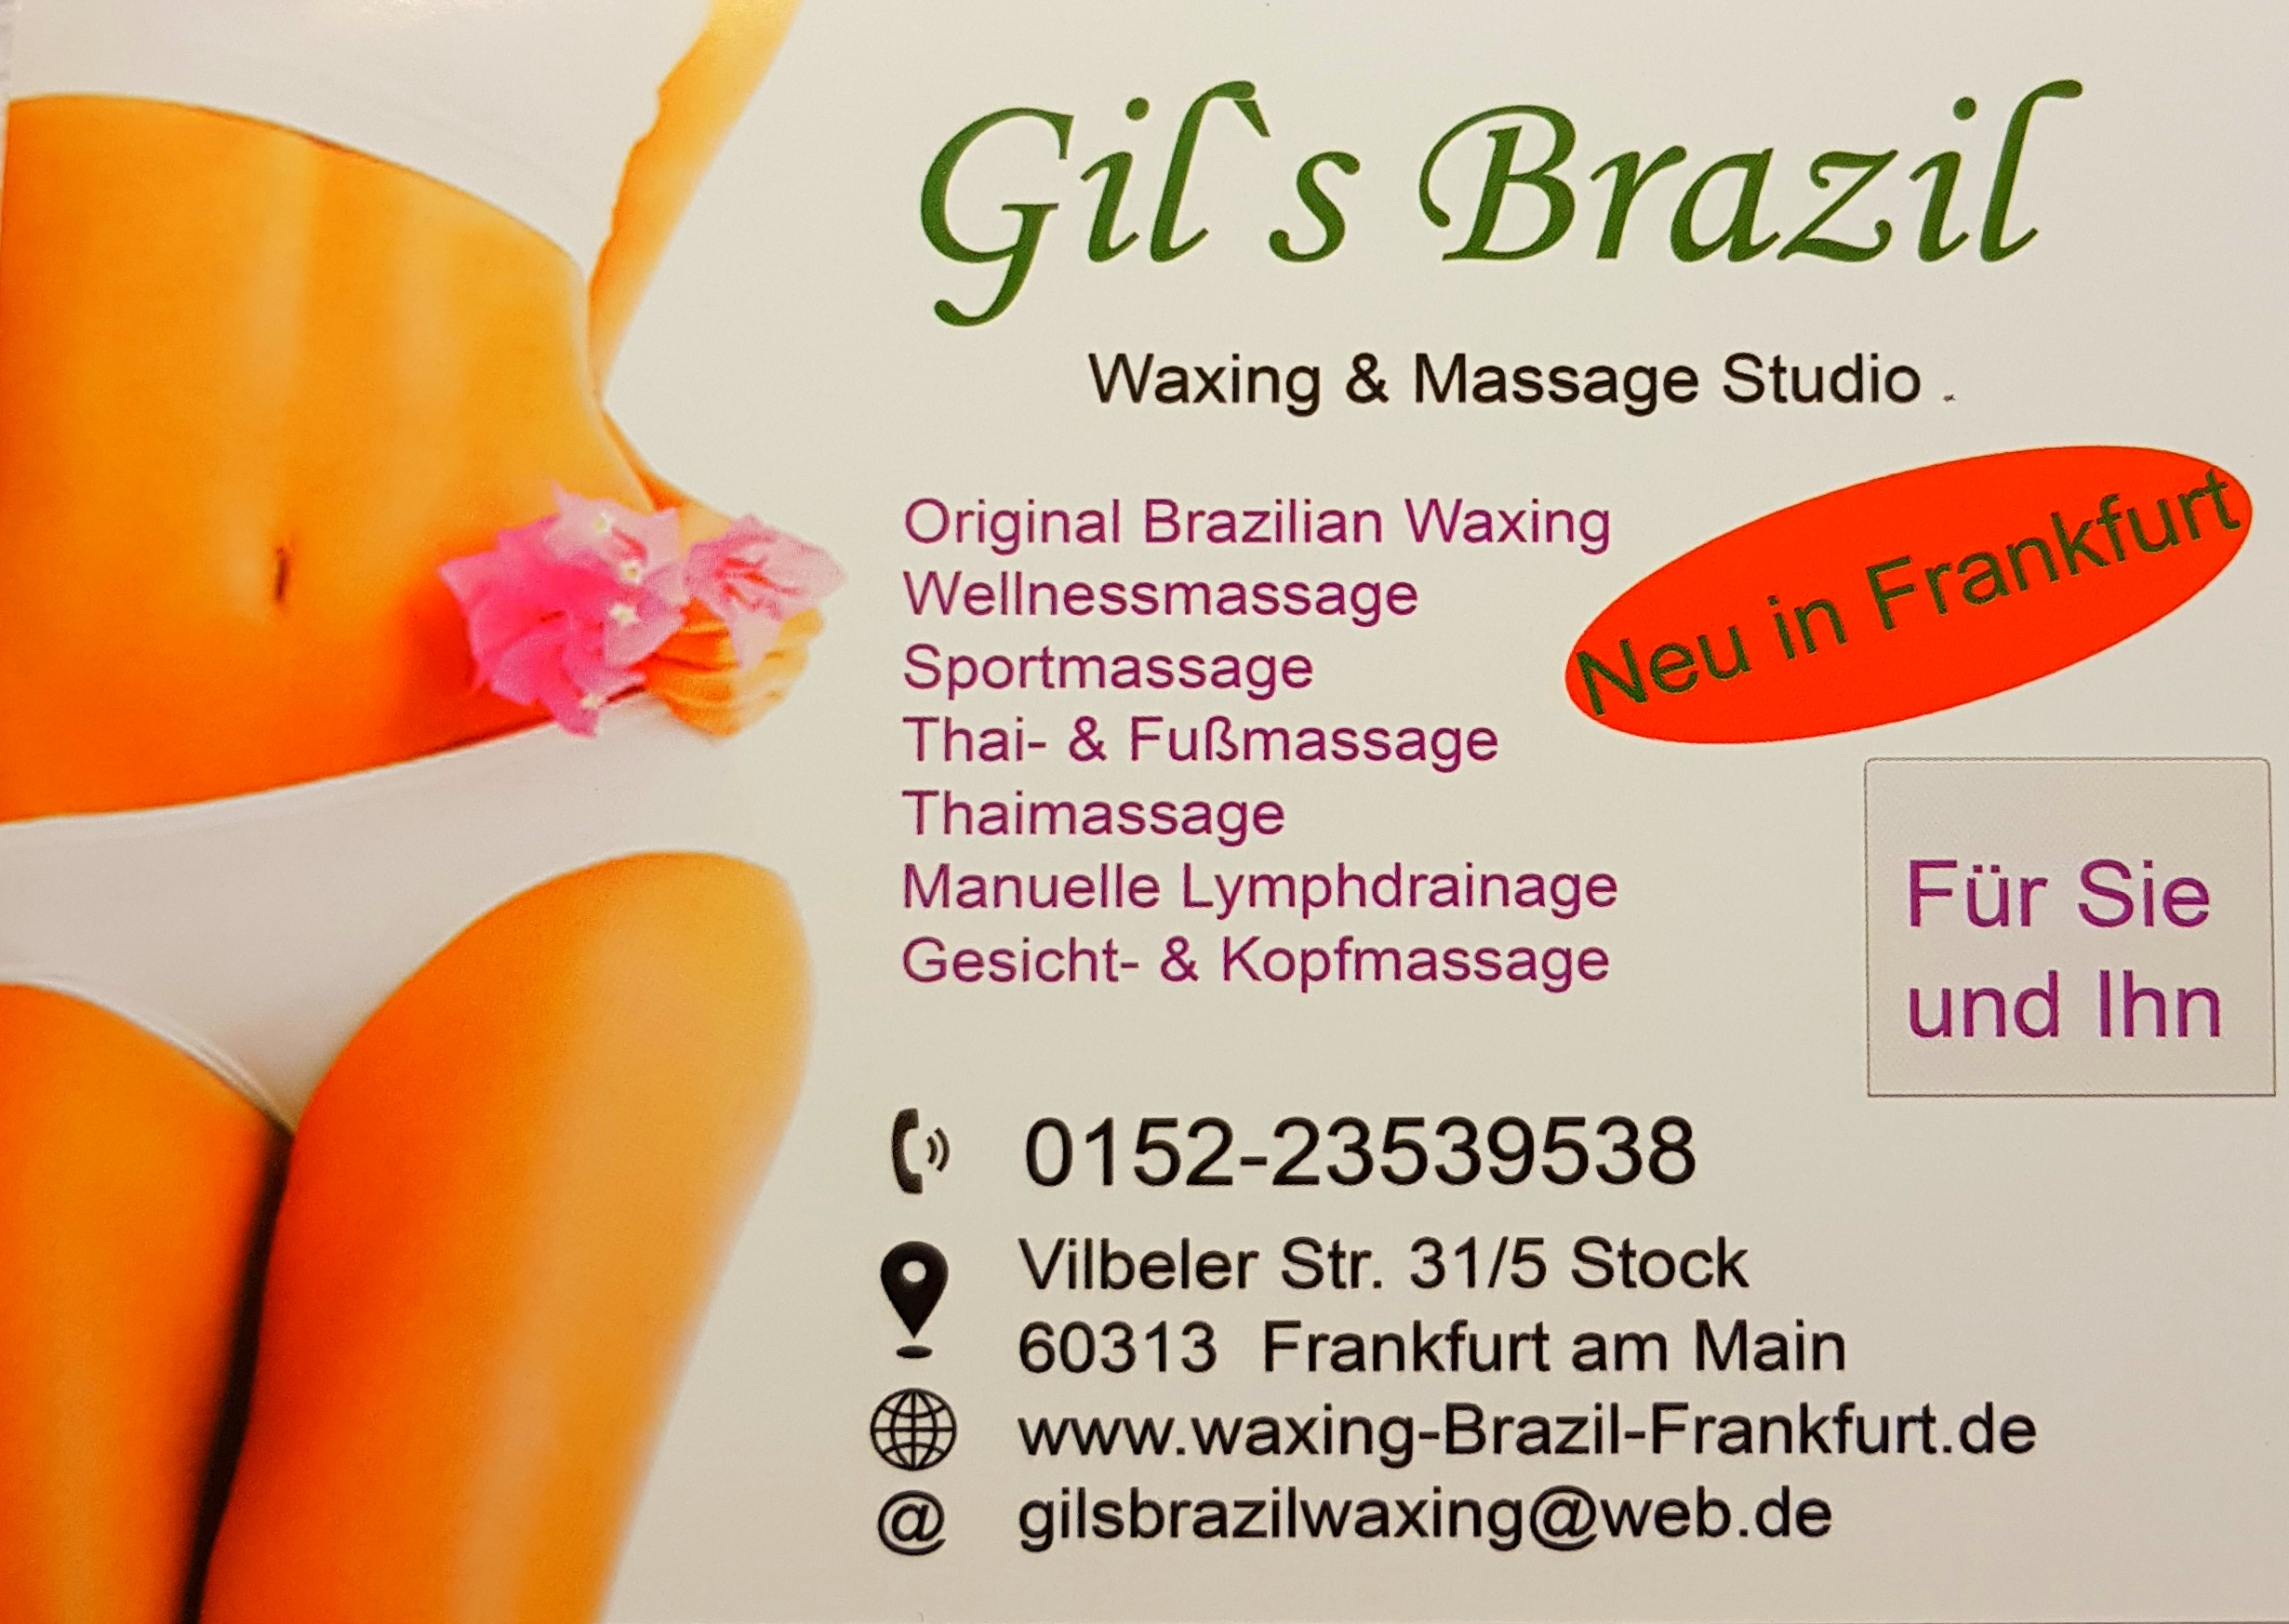 Gil's Brazil Waxing Massage Studio